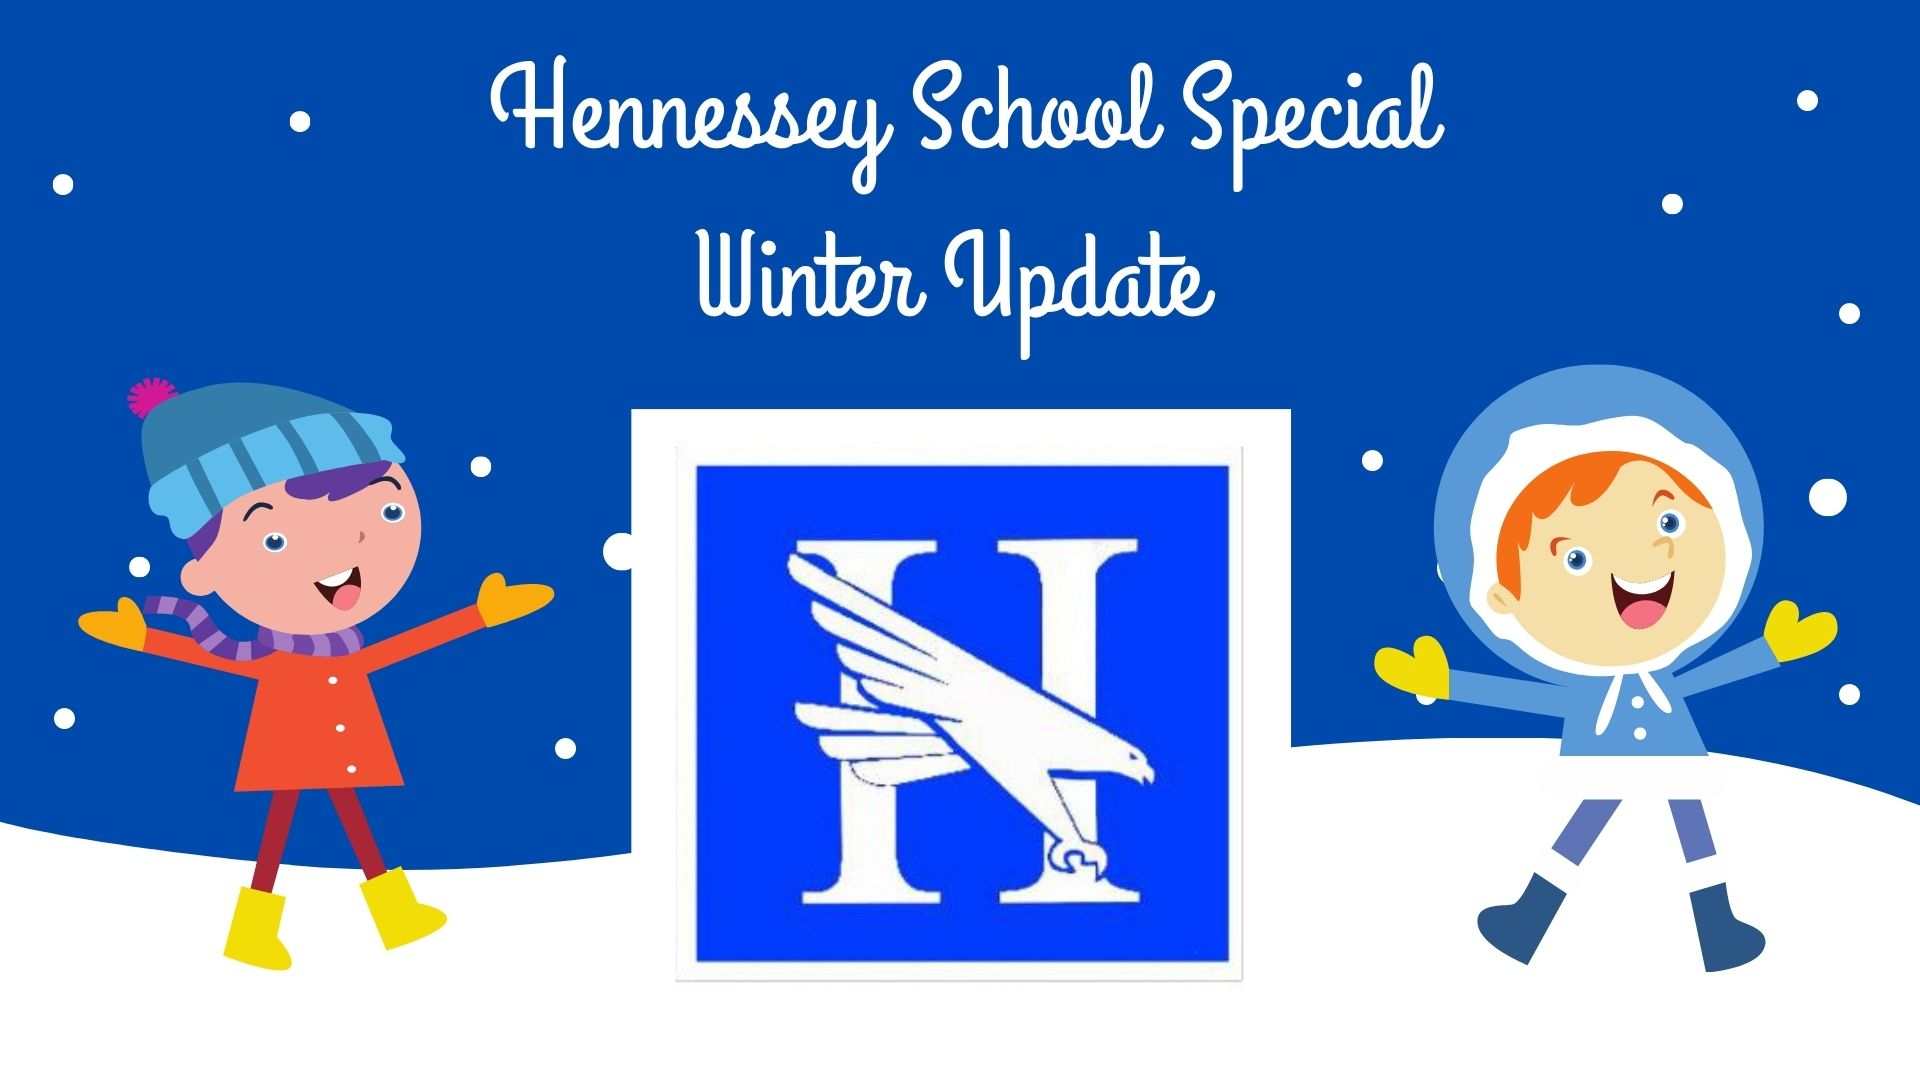 SPECIAL HENNESSEY SCHOOL WEATHER CHANGES